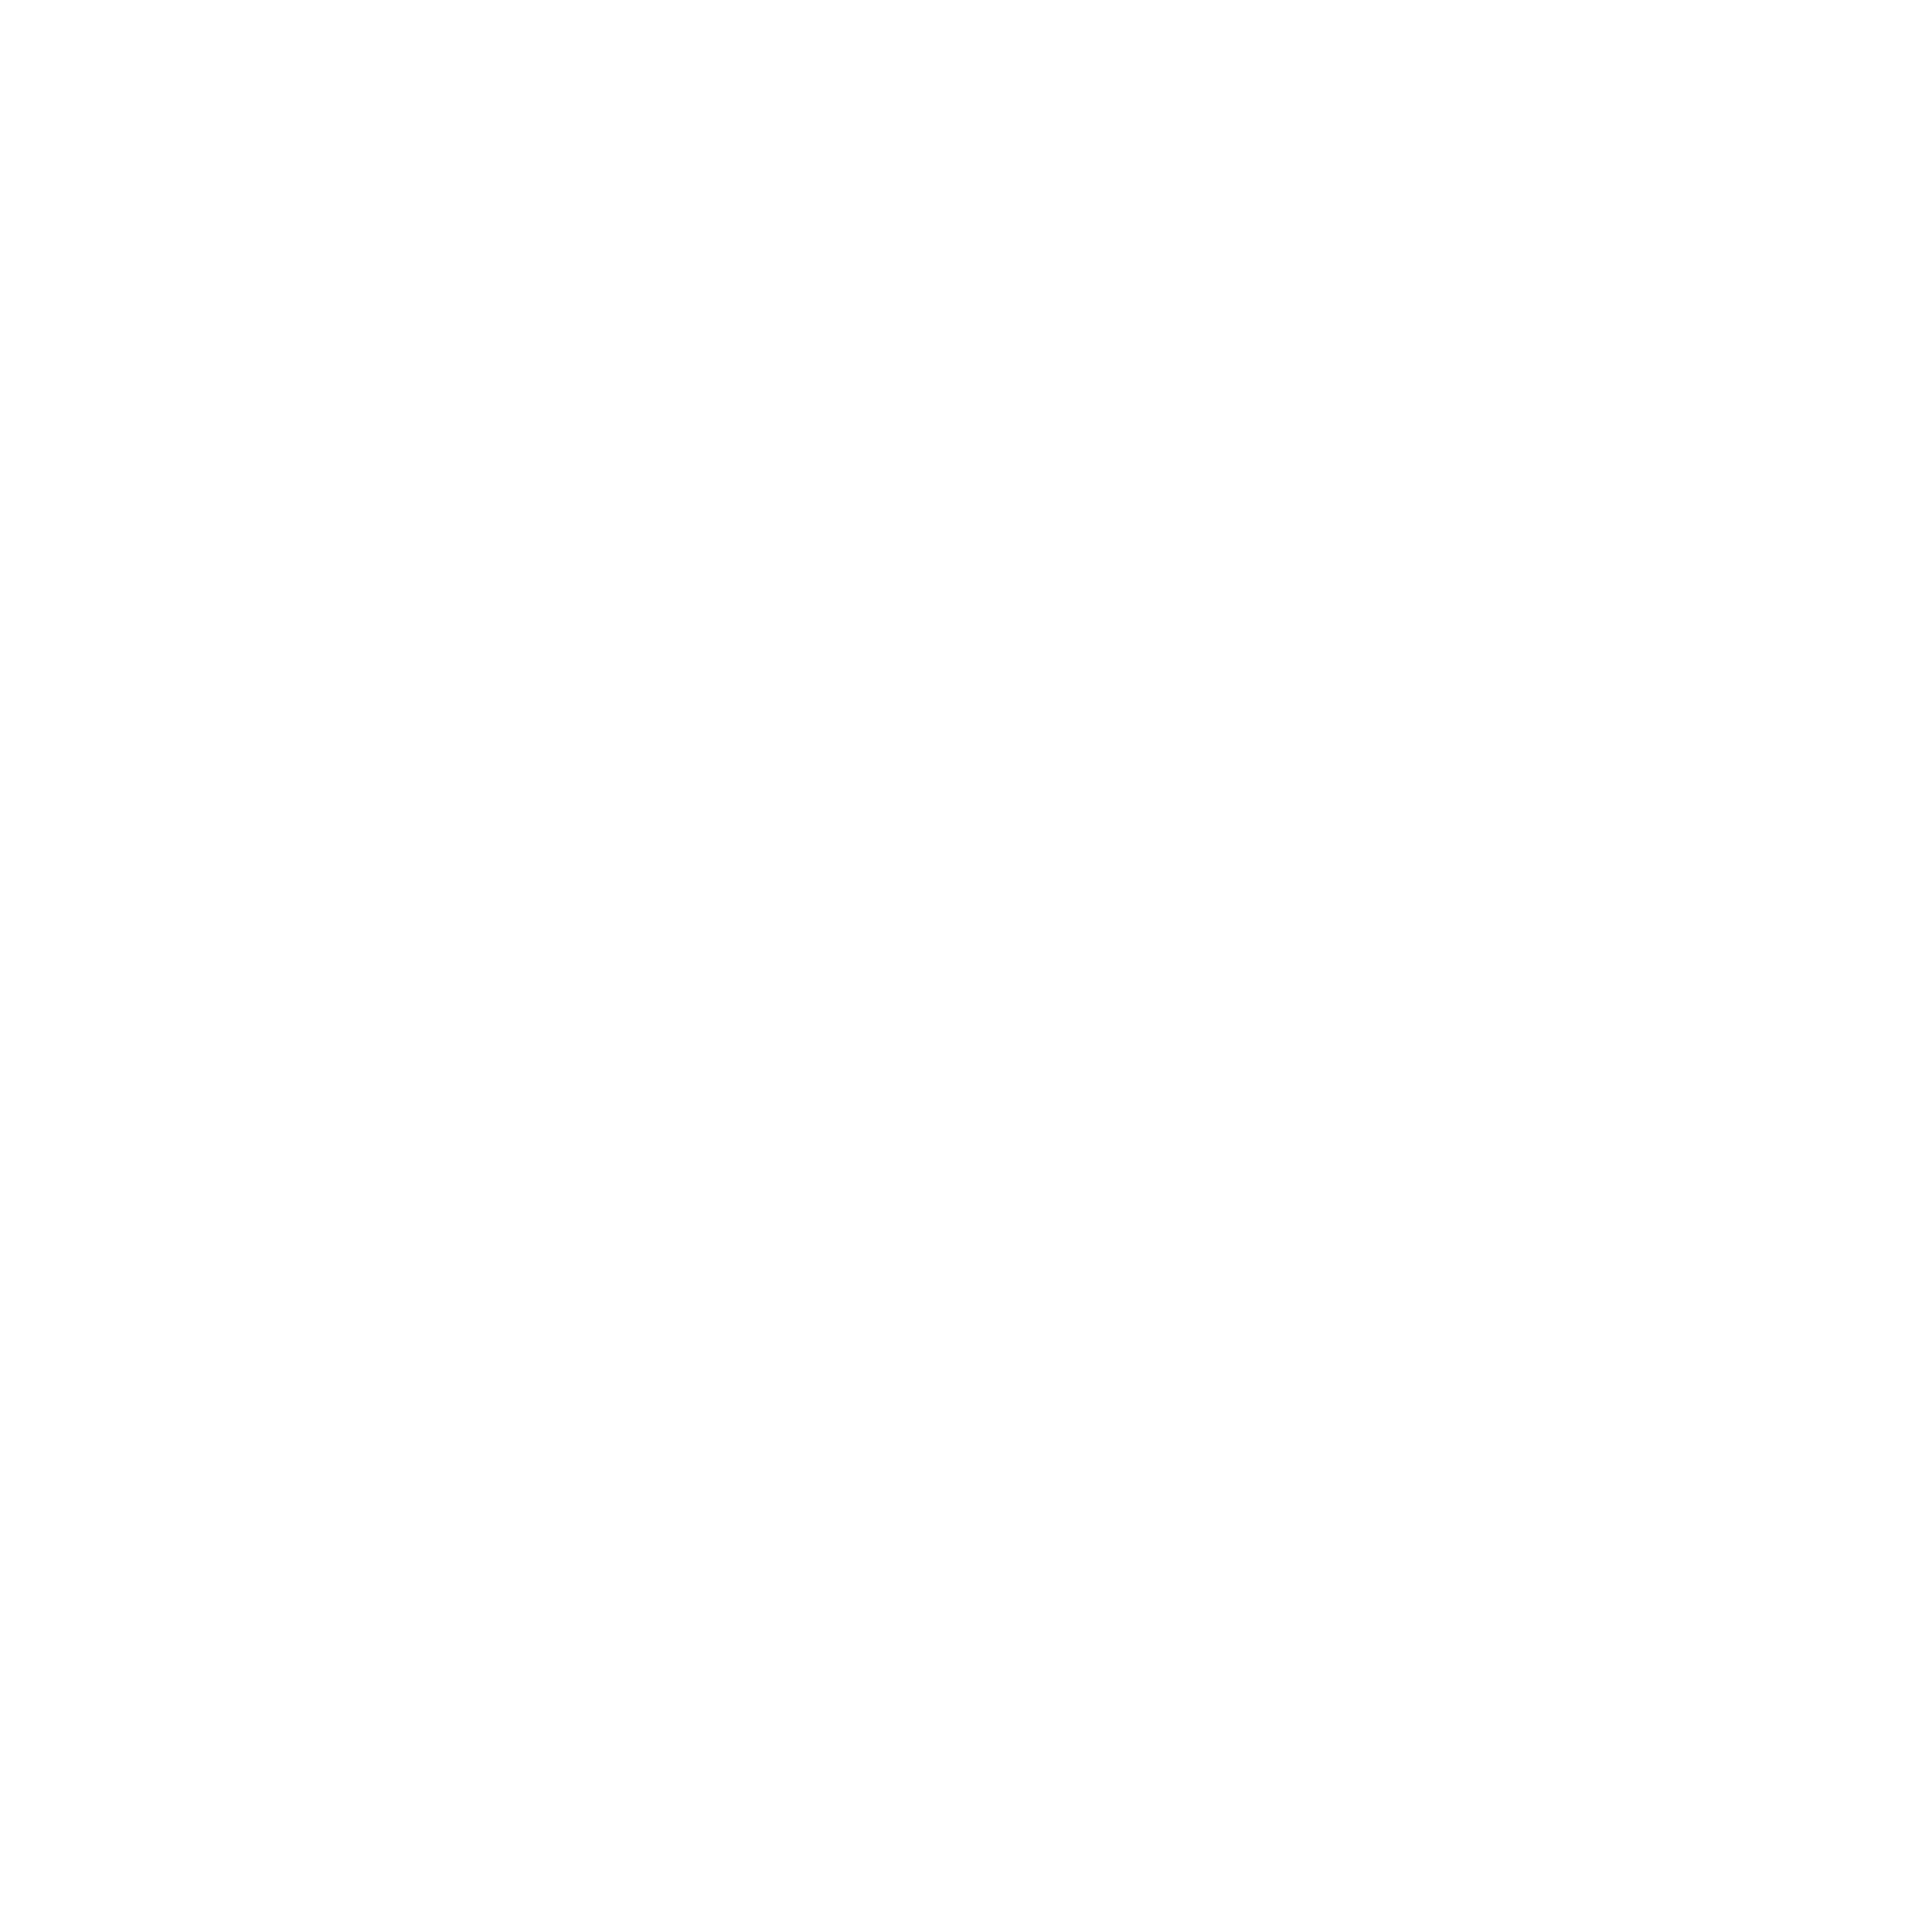 2000px-fred.png